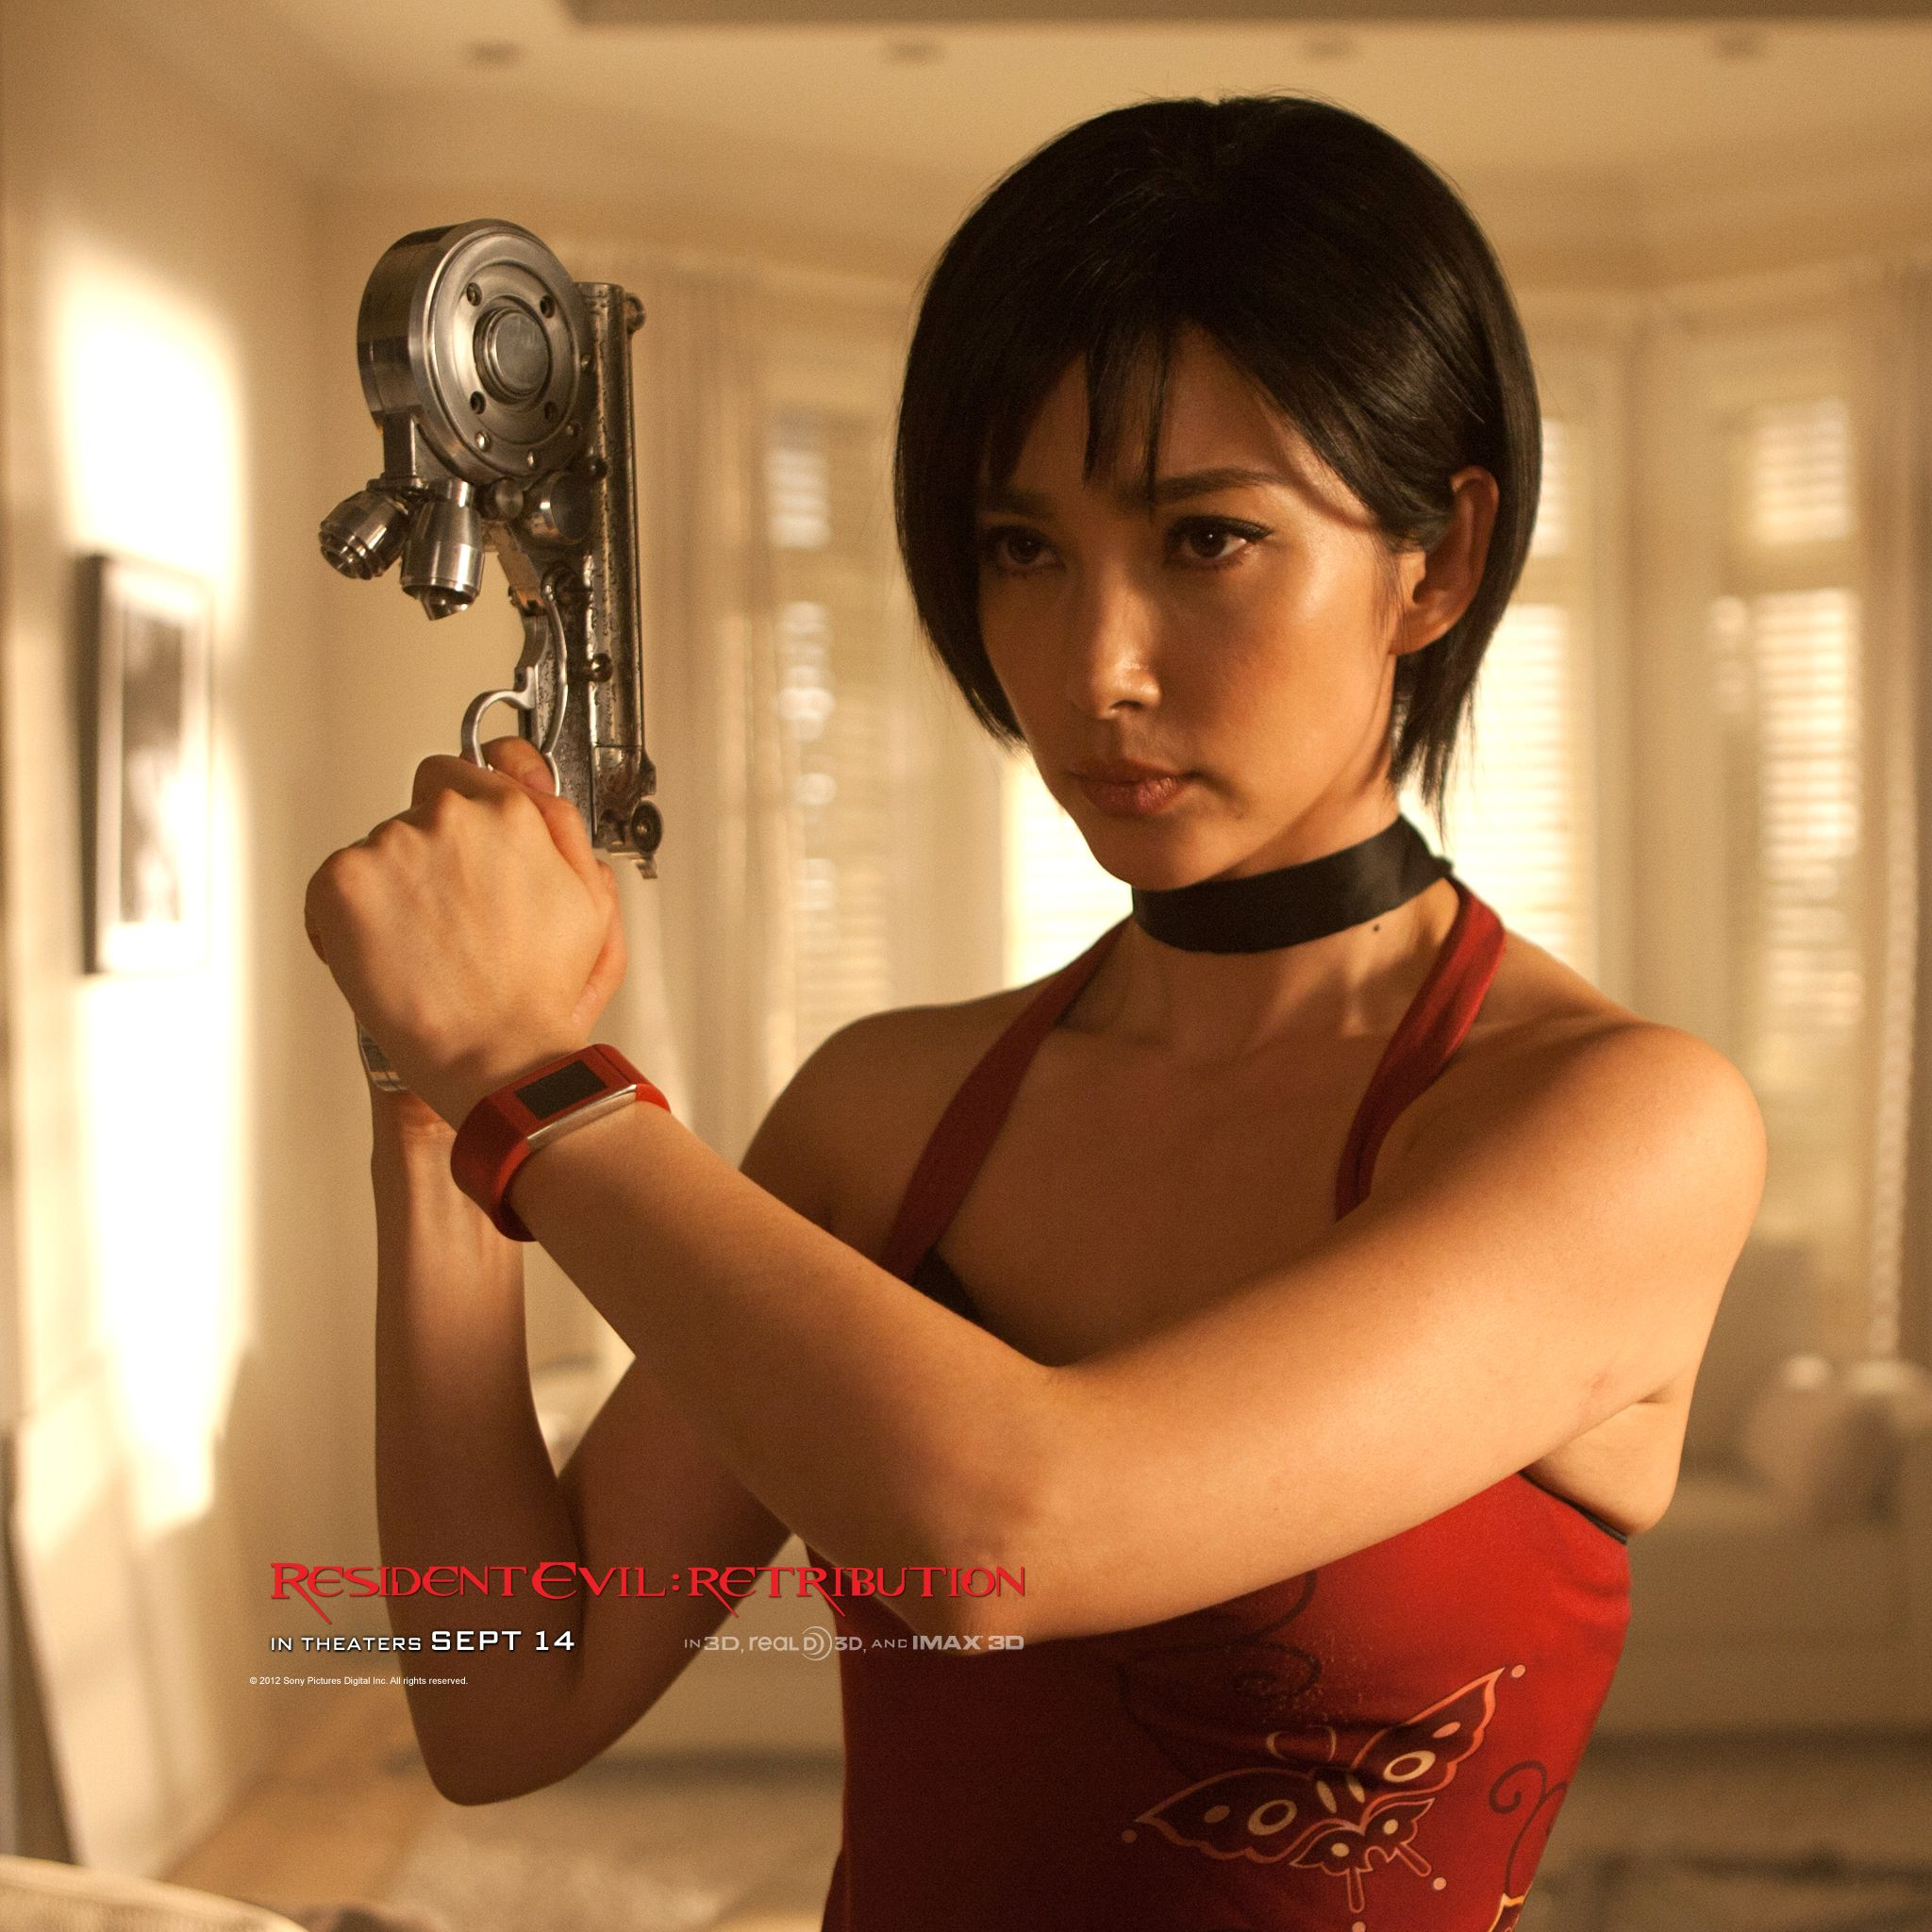 resident evil retribution images featuring michelle